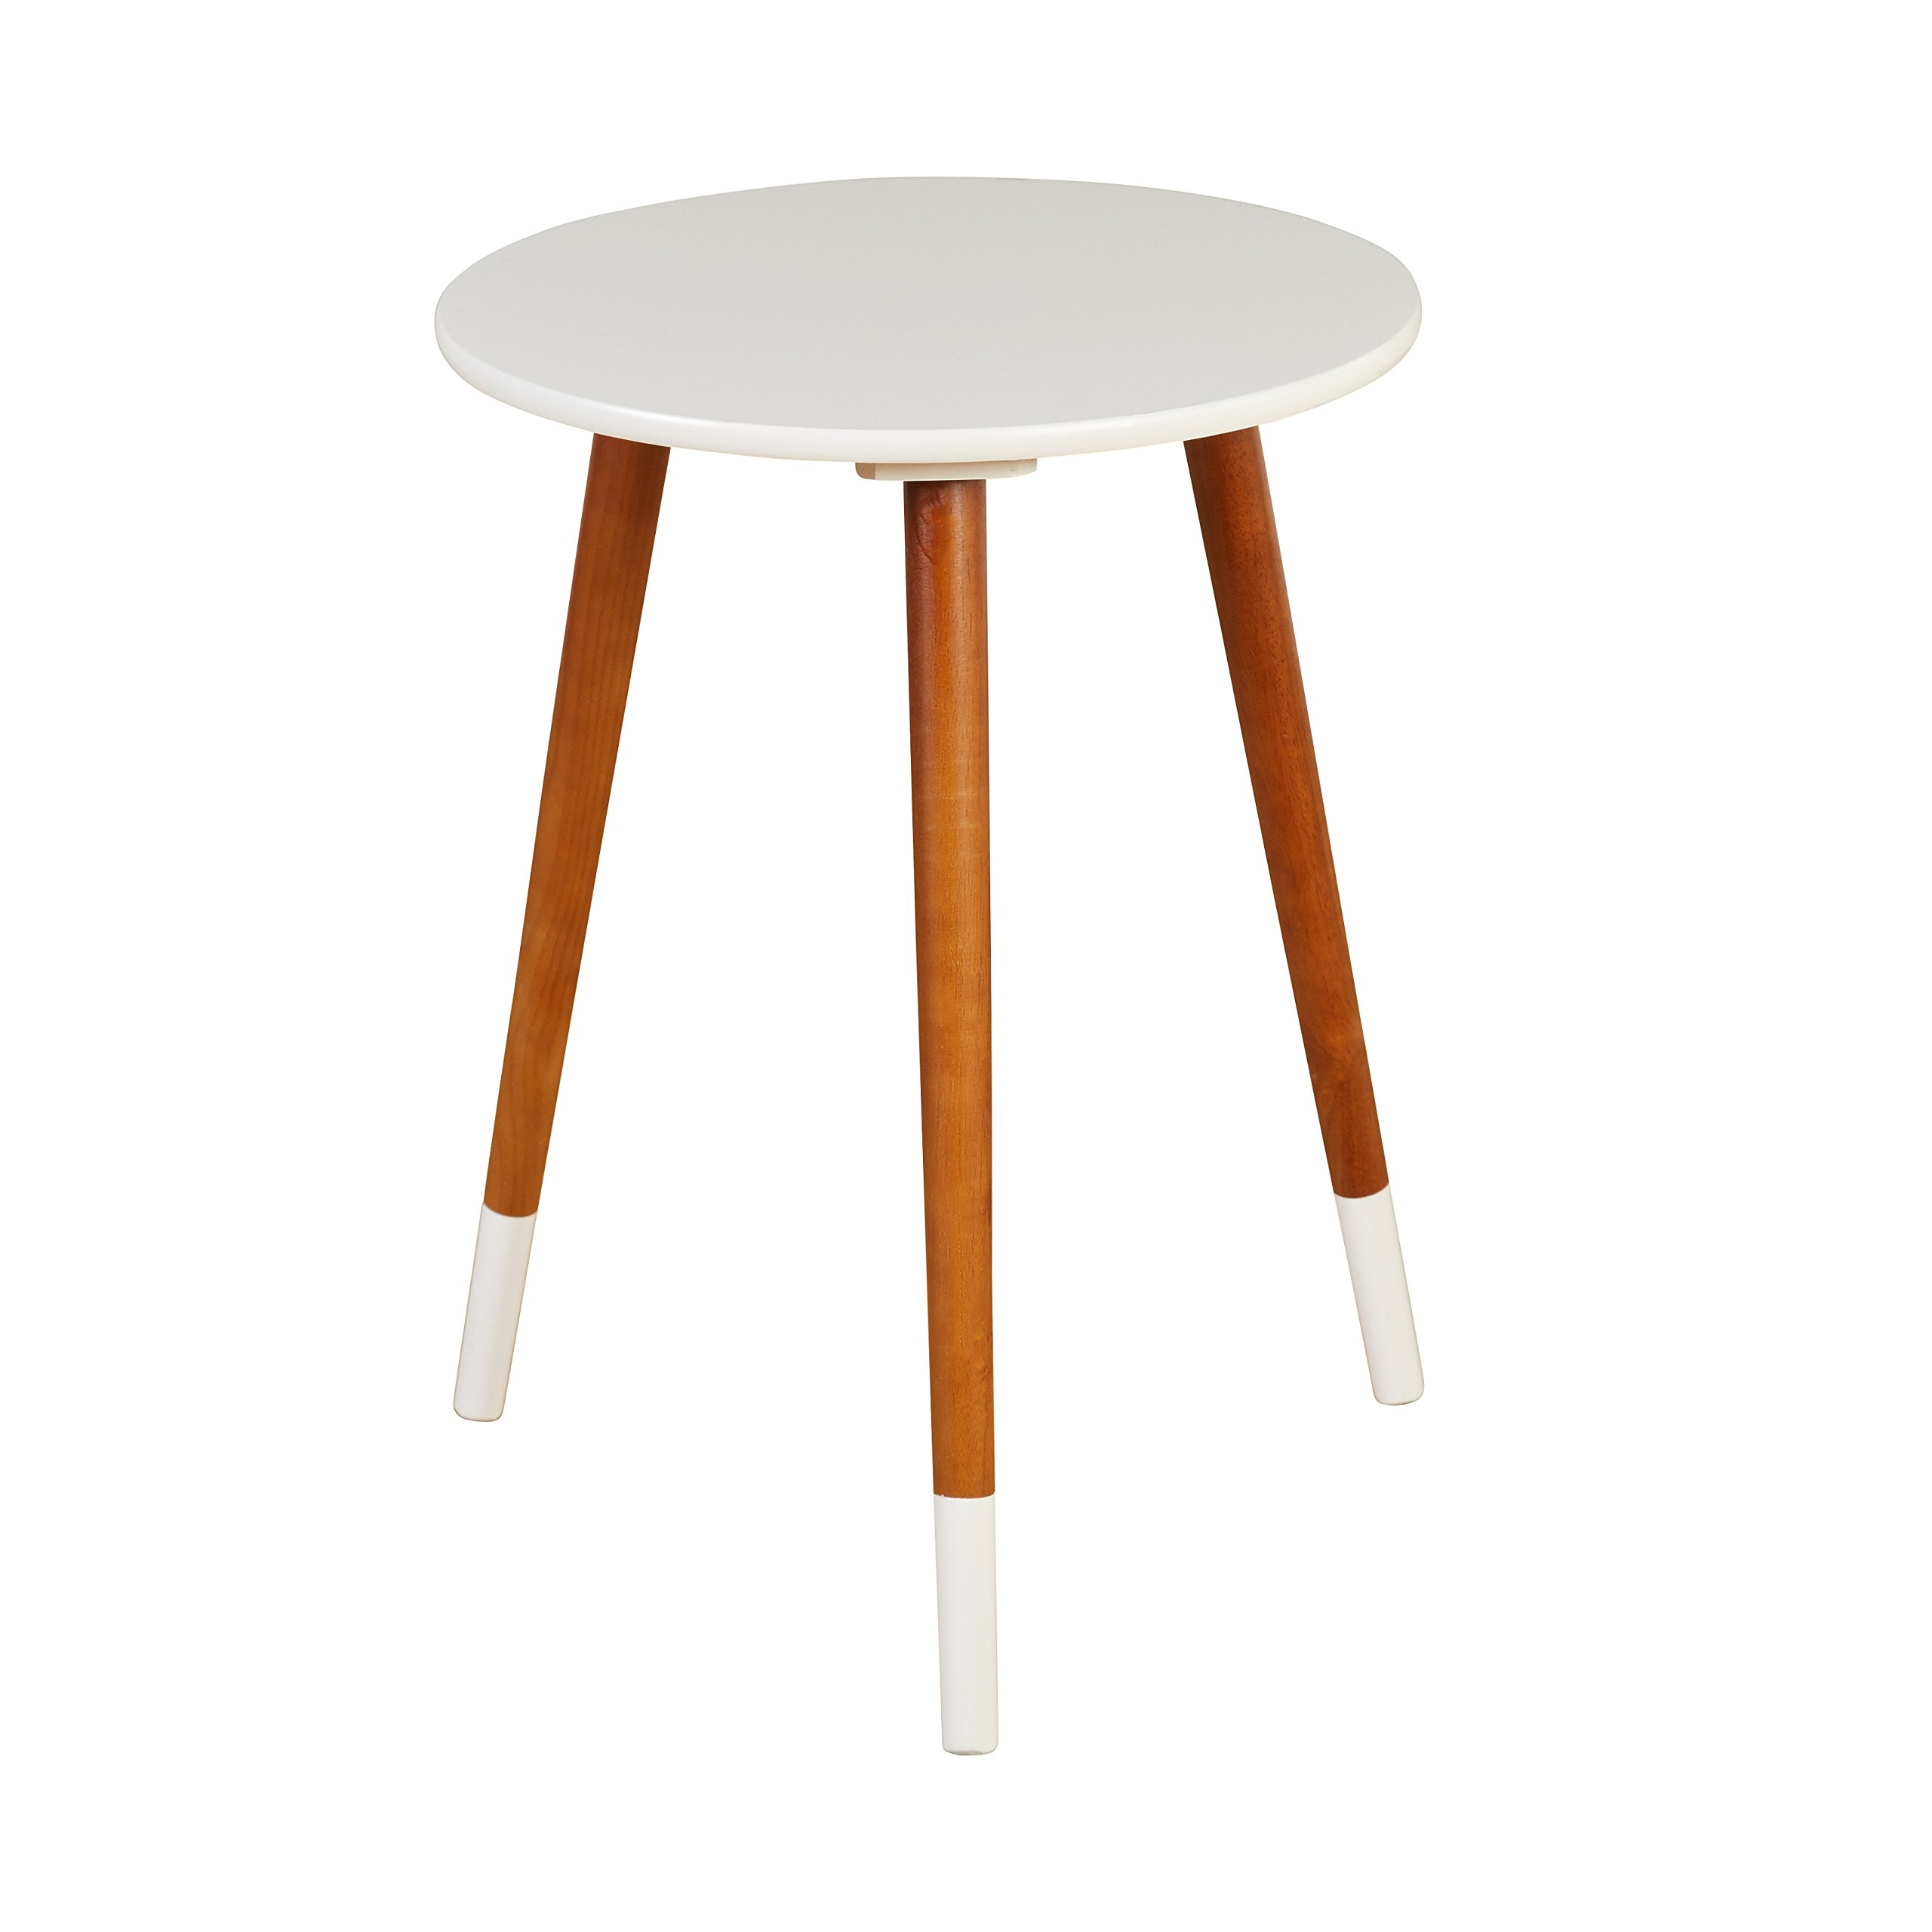 Target Marketing Systems Livia Collection Ultra Modern Round End Table With Splayed Leg Finish, White/Wood by Target Marketing Systems